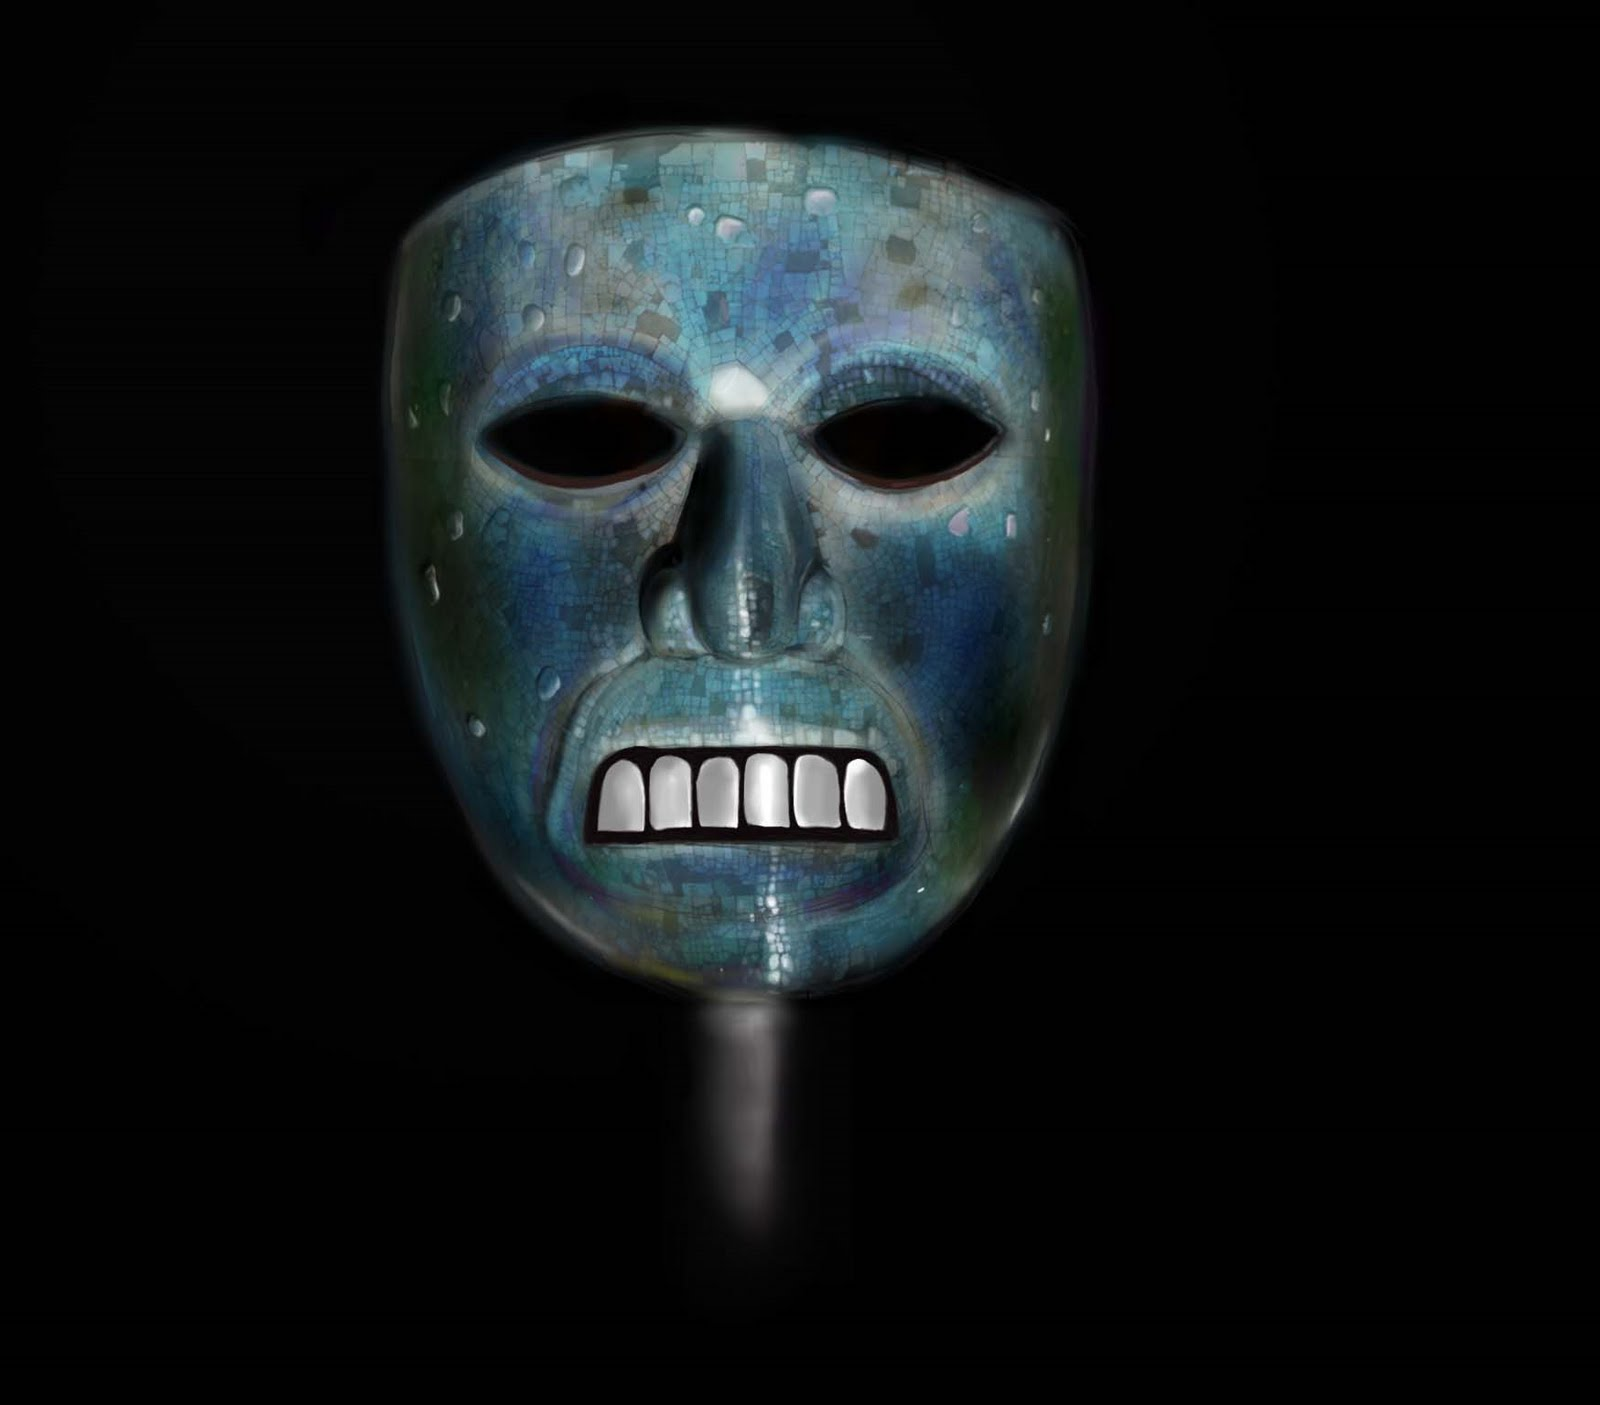 original mask it also gave the mask a mystical quality